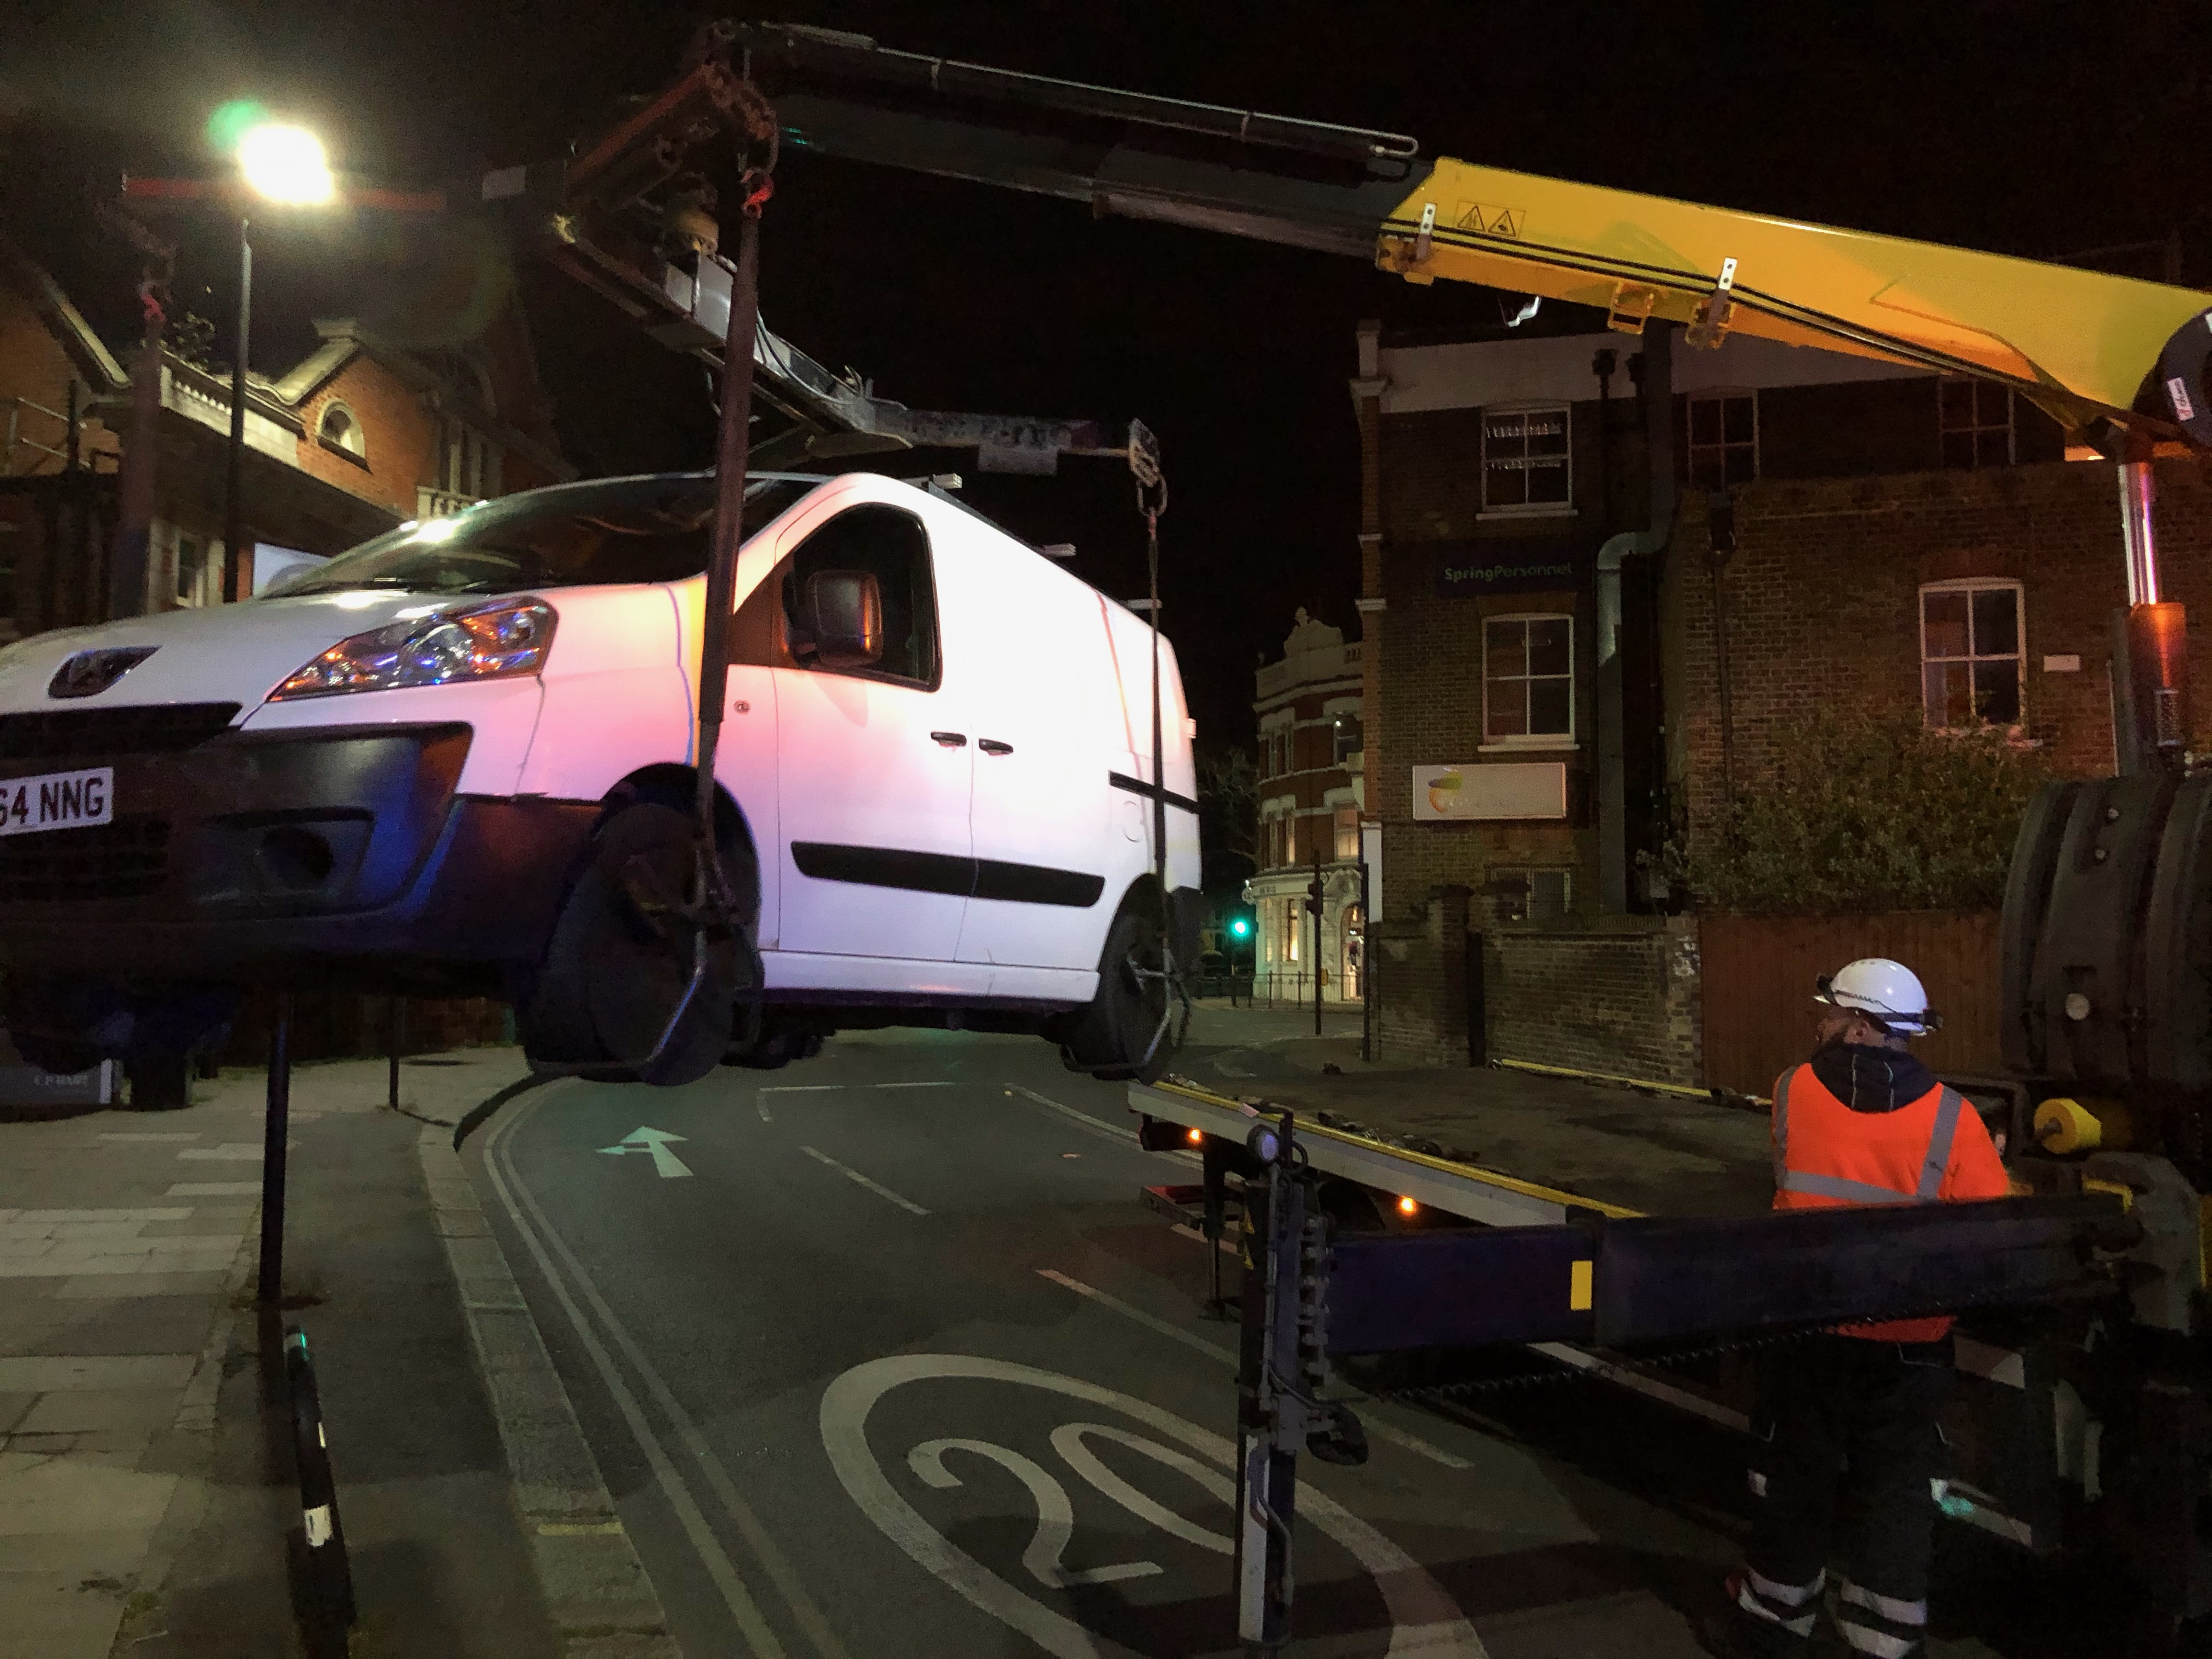 Van being lifted by crane (Pic: Andy Sands)